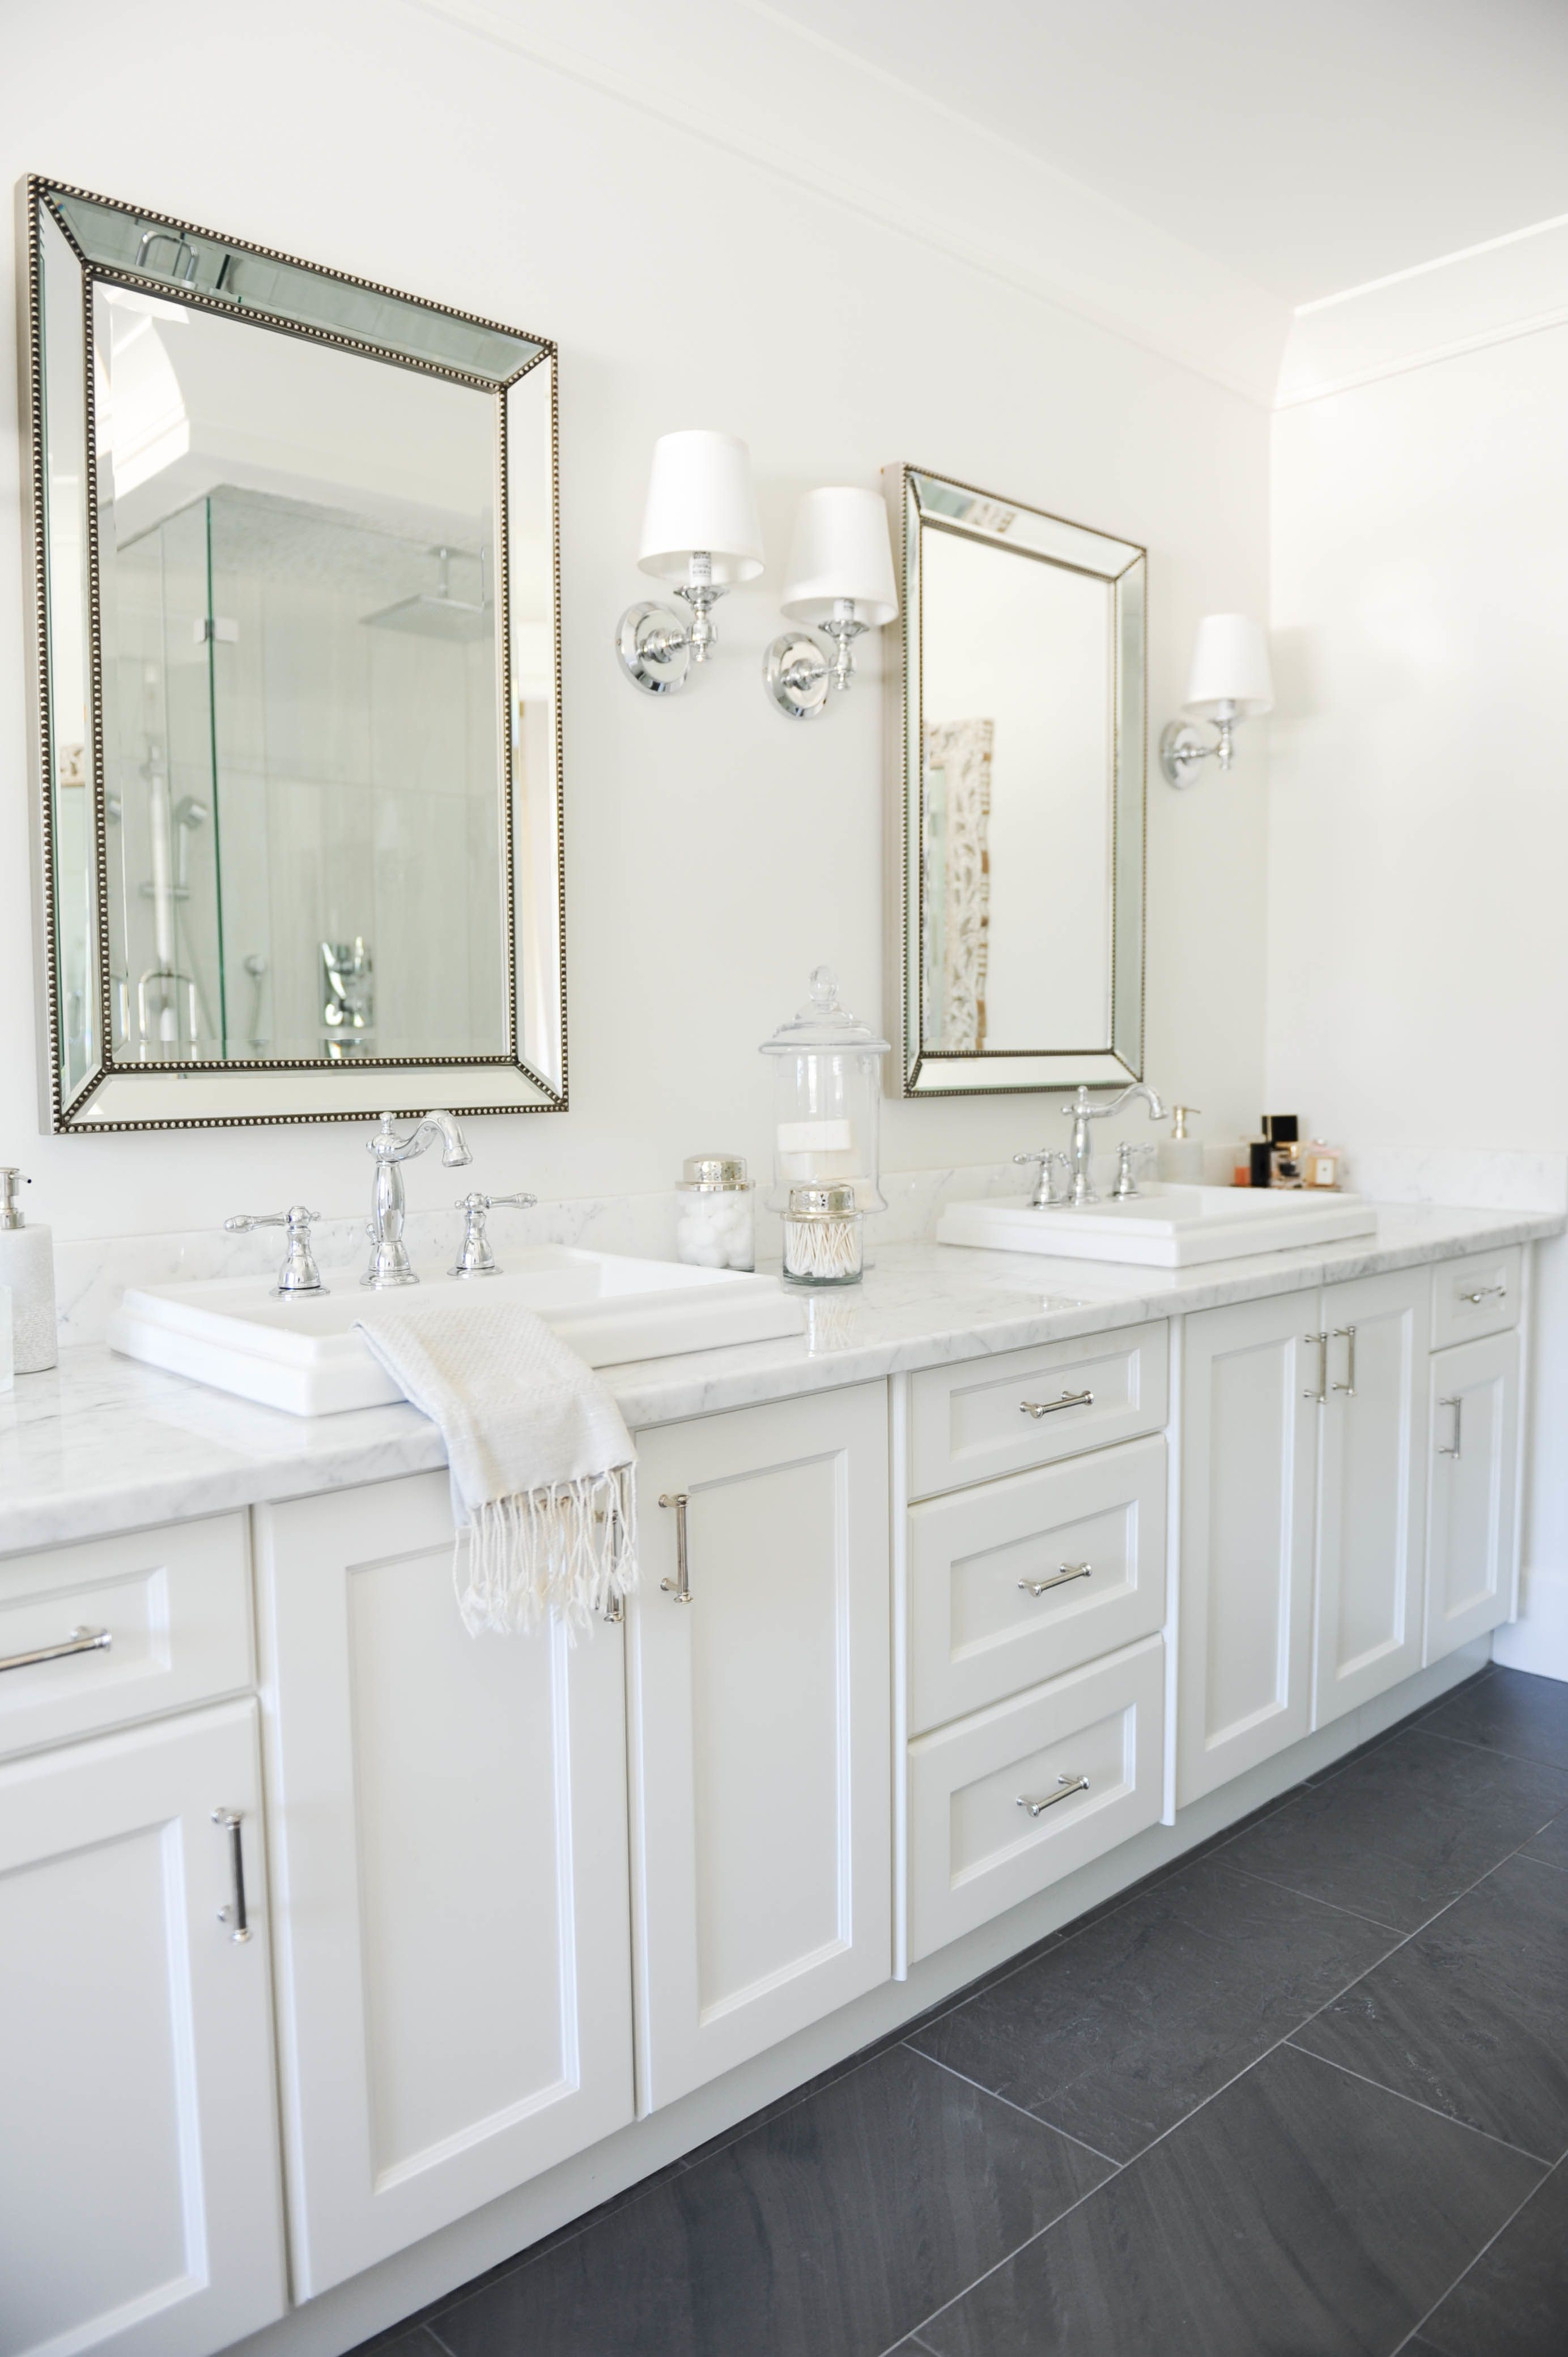 cabinets concept top beauty bathroom cupboards restoration painted modern hardware with